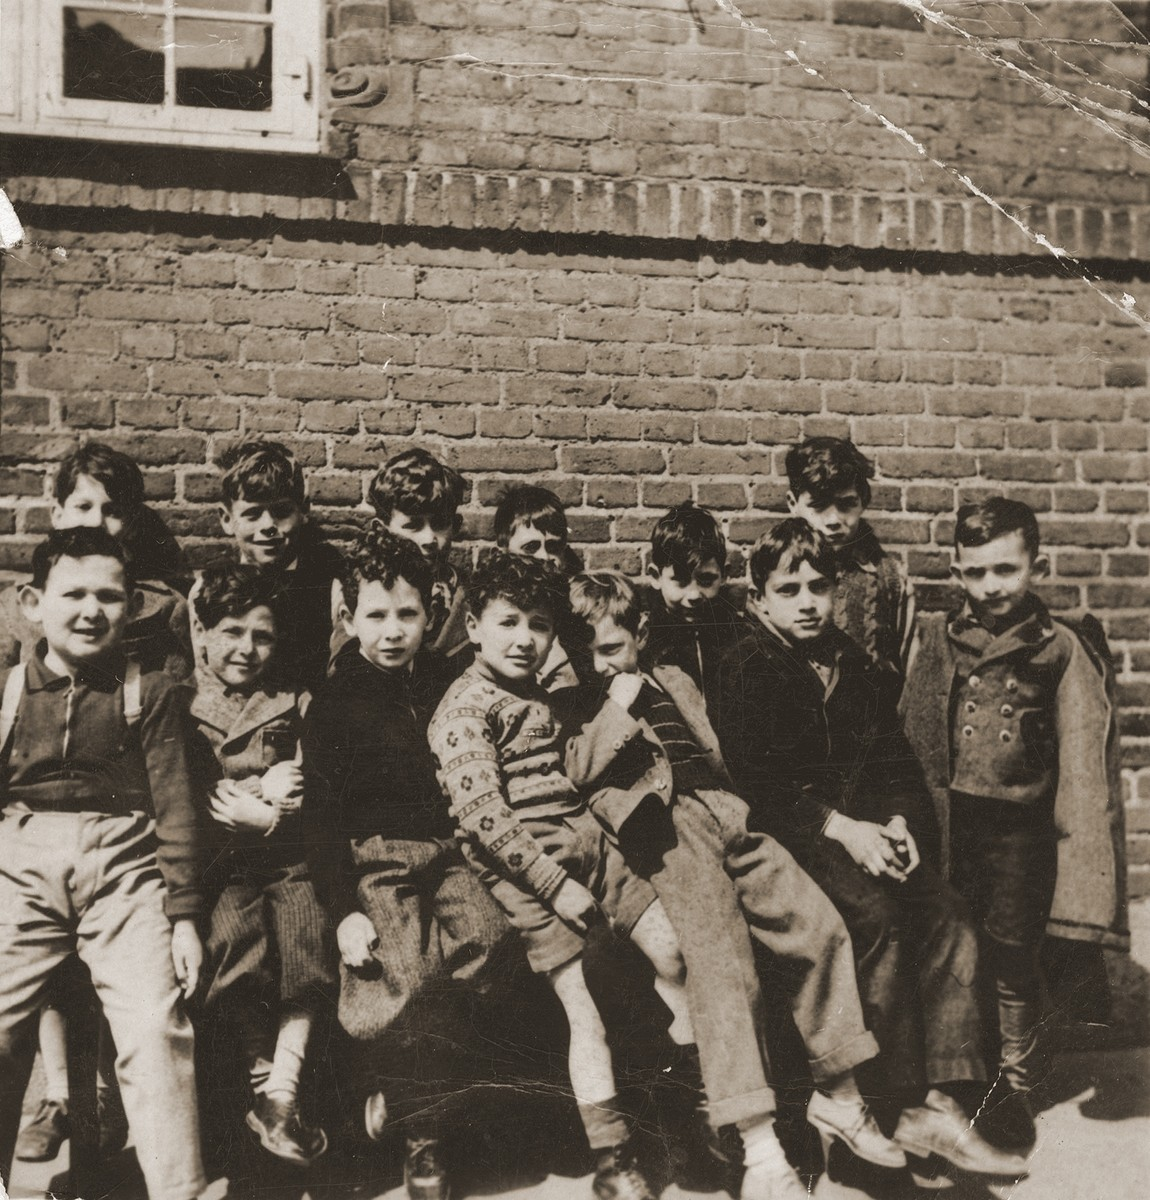 Pupils of the Mosaik School for Boys.    Seated in the front row center is Gus Goldberger.   The Mosaik School for Boys and the Caroline School for Girls were established in the beginning of the nineteenth century for the purpose of acculturating the children of Russian Jewish immigrants into Danish culture.  Though most of the teachers were not Jewish, the school also taught Jewish history and religion.